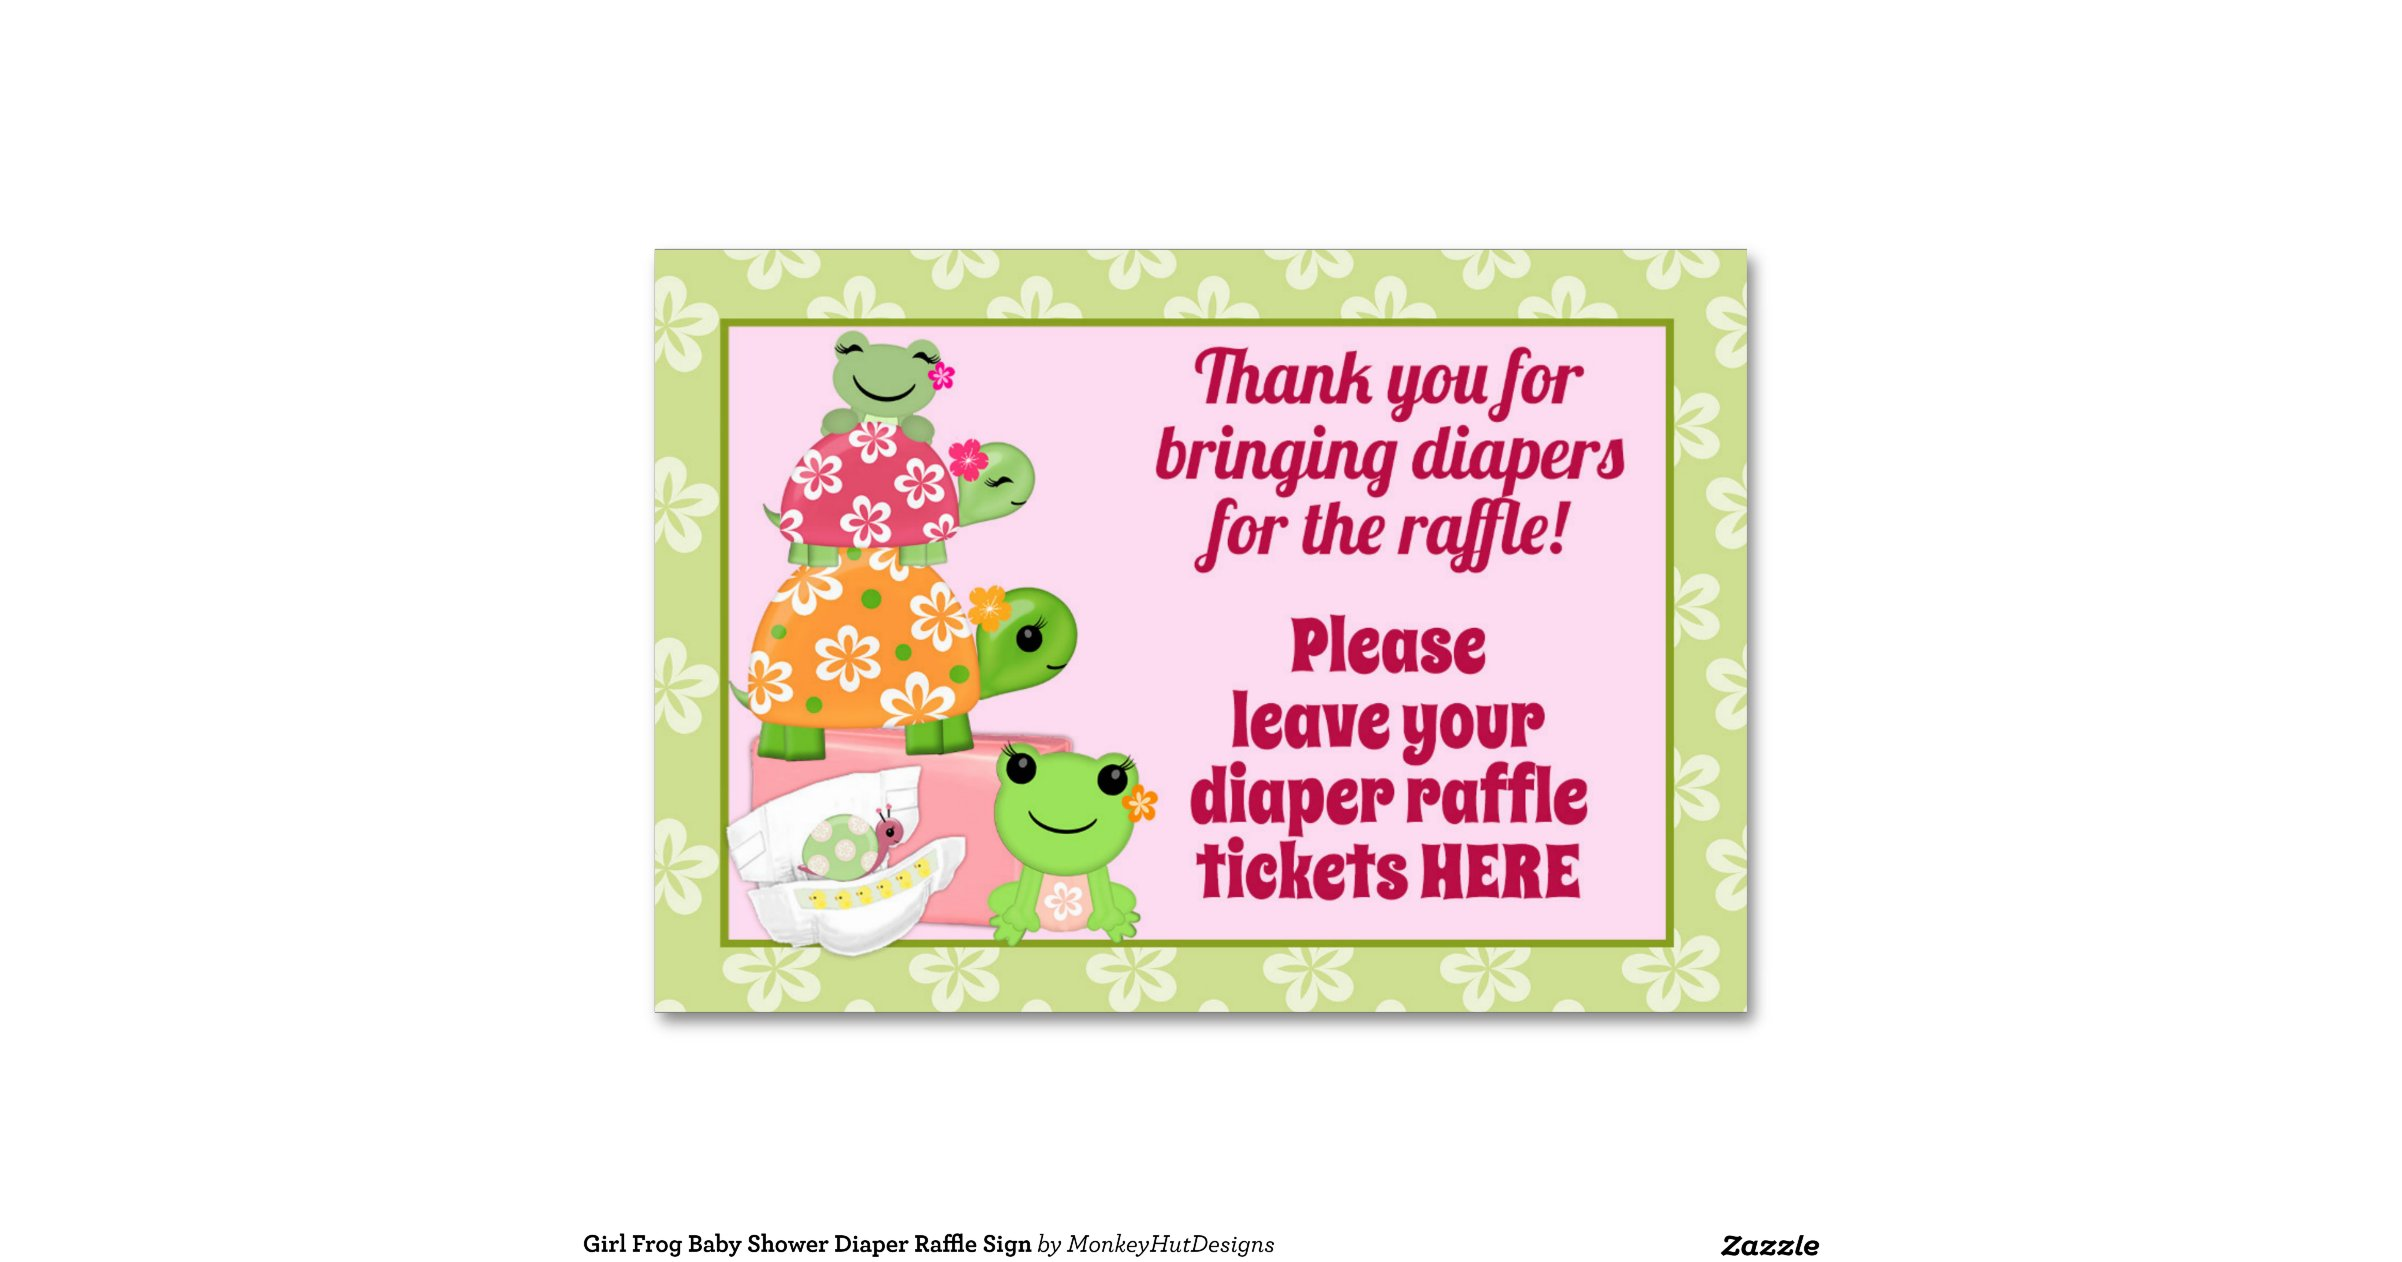 girl frog baby shower diaper raffle sign table cards zazzle